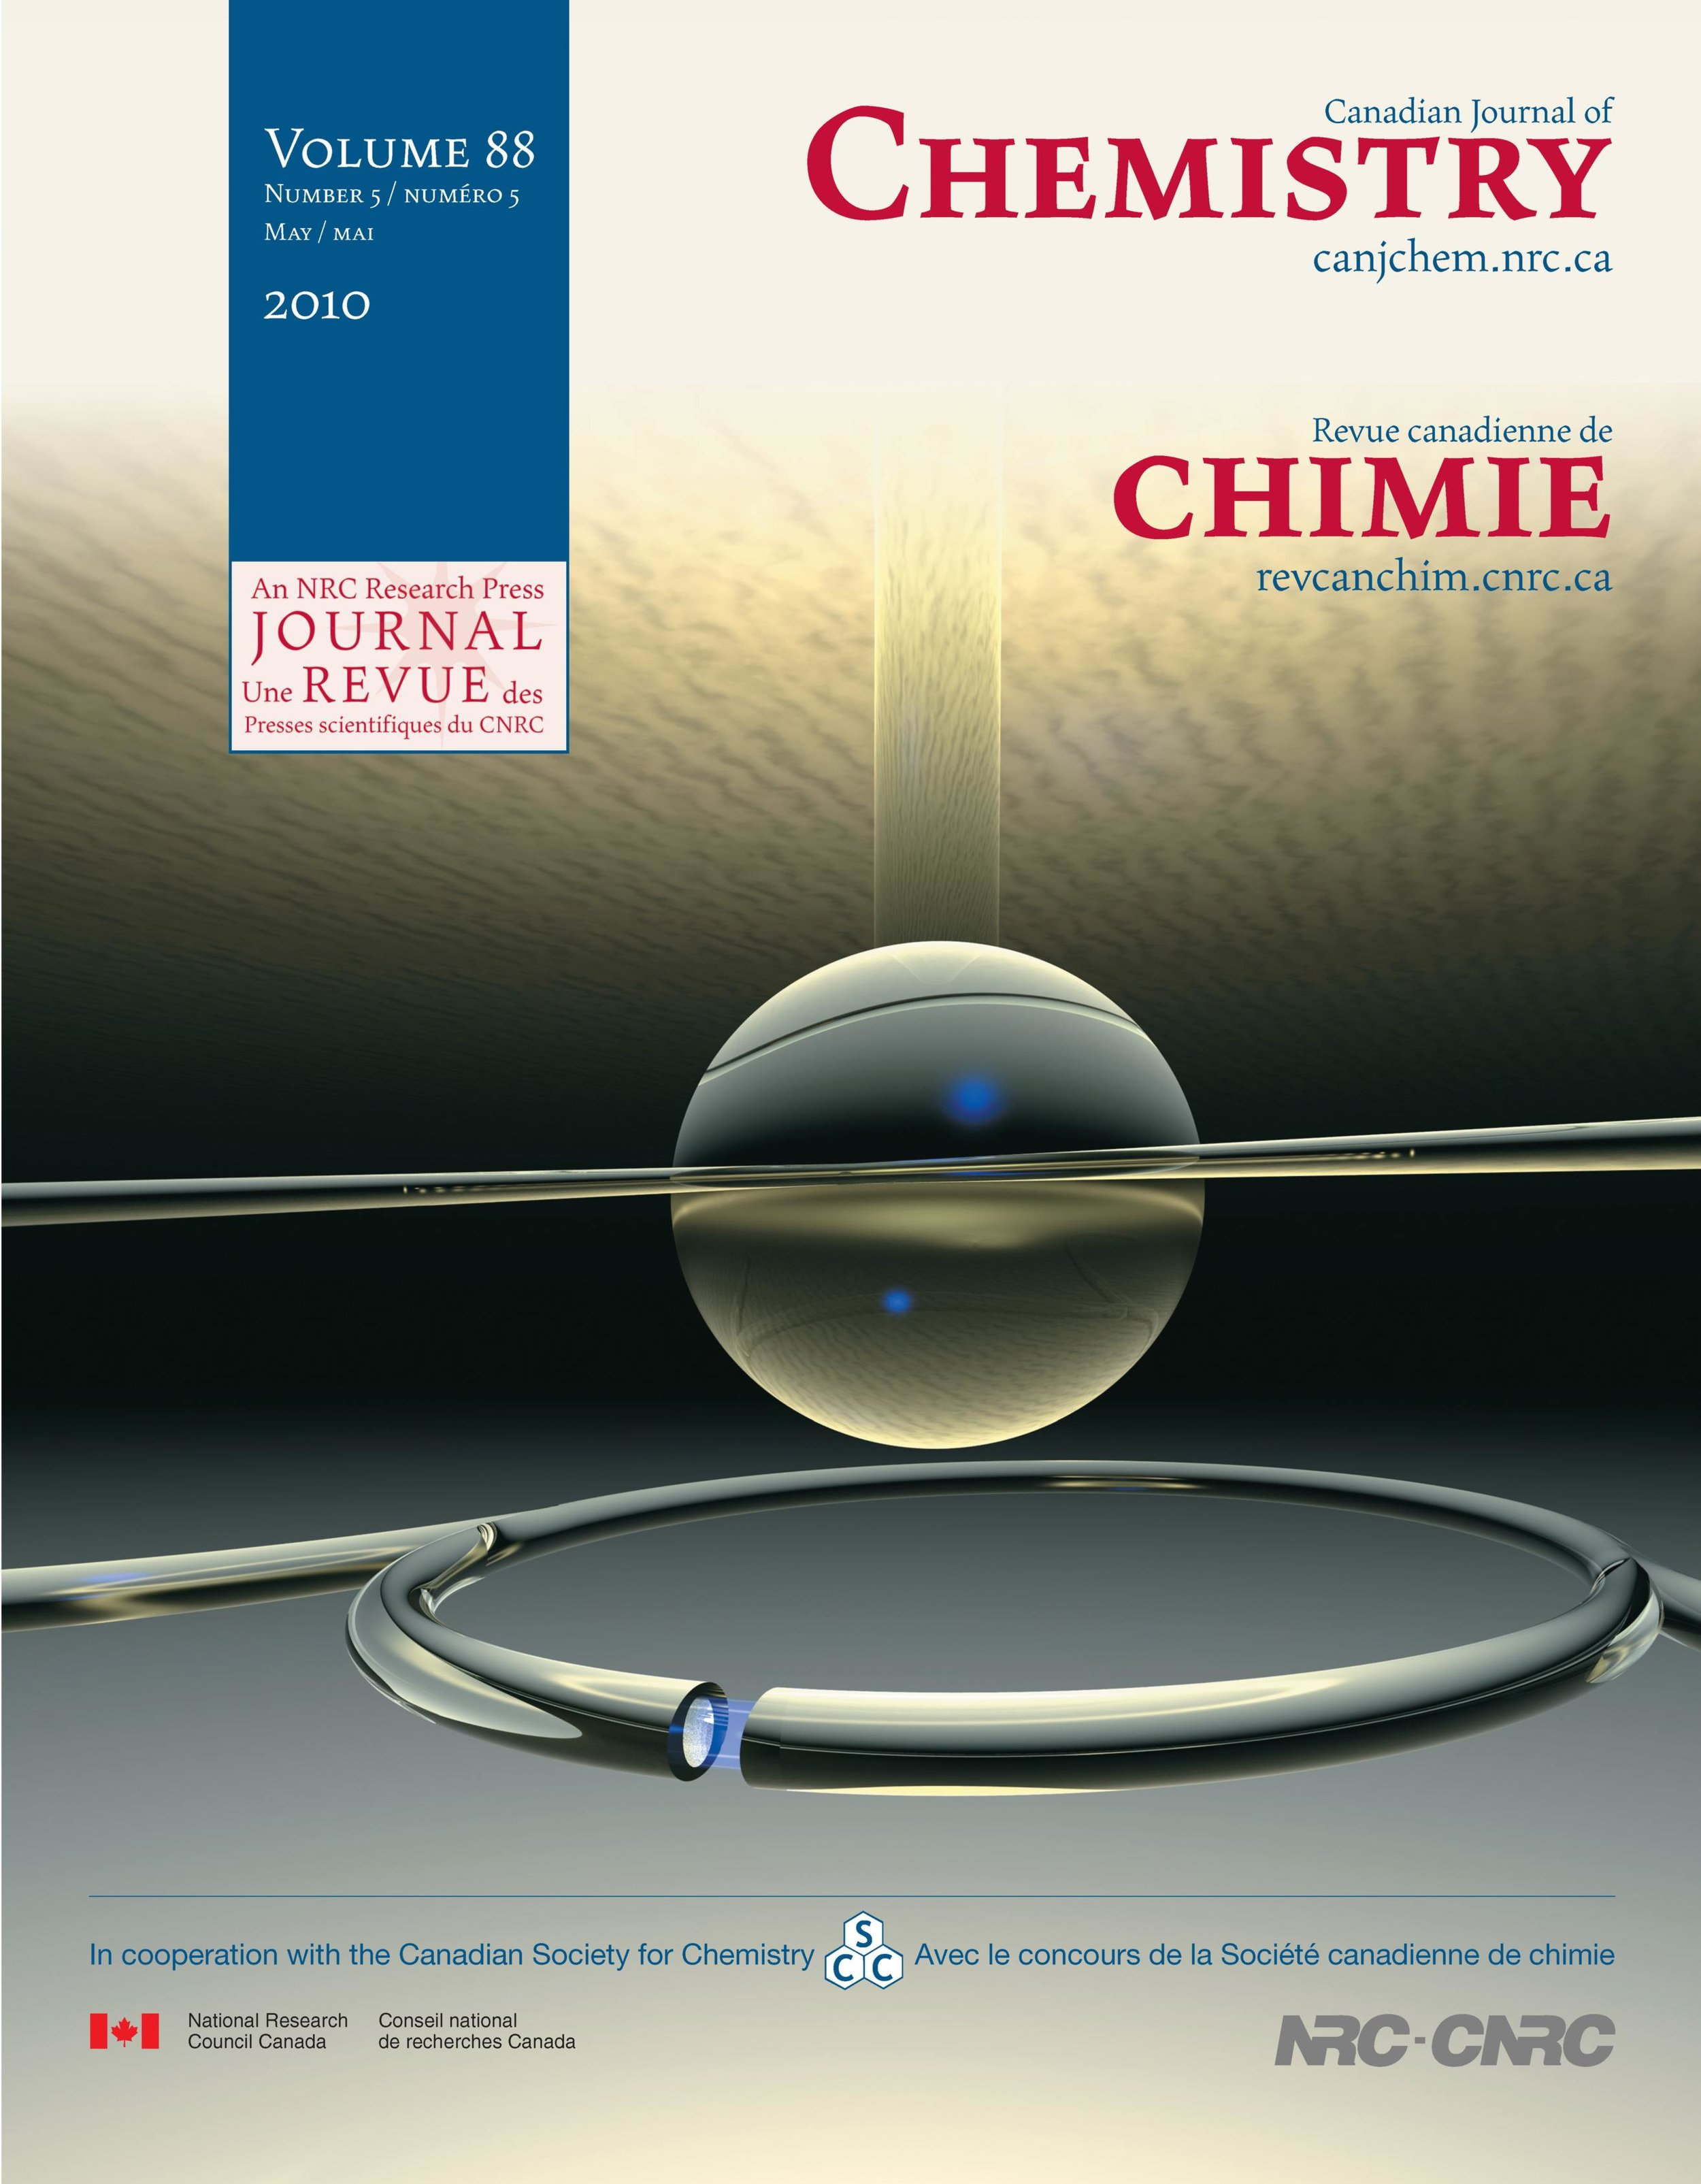 2010 Absorption Detection using Optical Waveguide Cavities (Can J Chem) cover - Copy.jpg